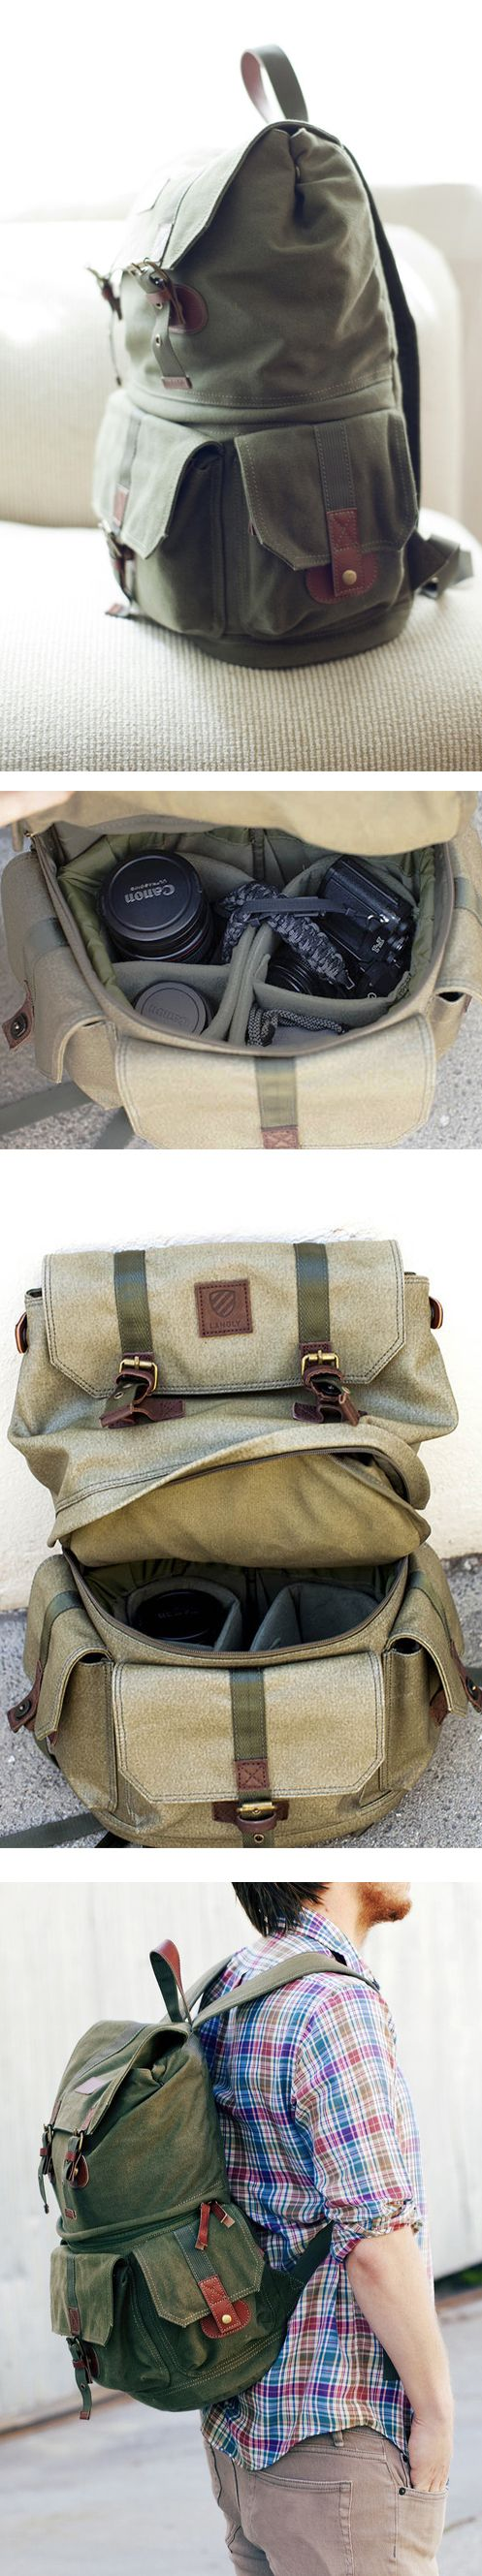 Camera Backpack by Langly. Perfect for photo adventures.